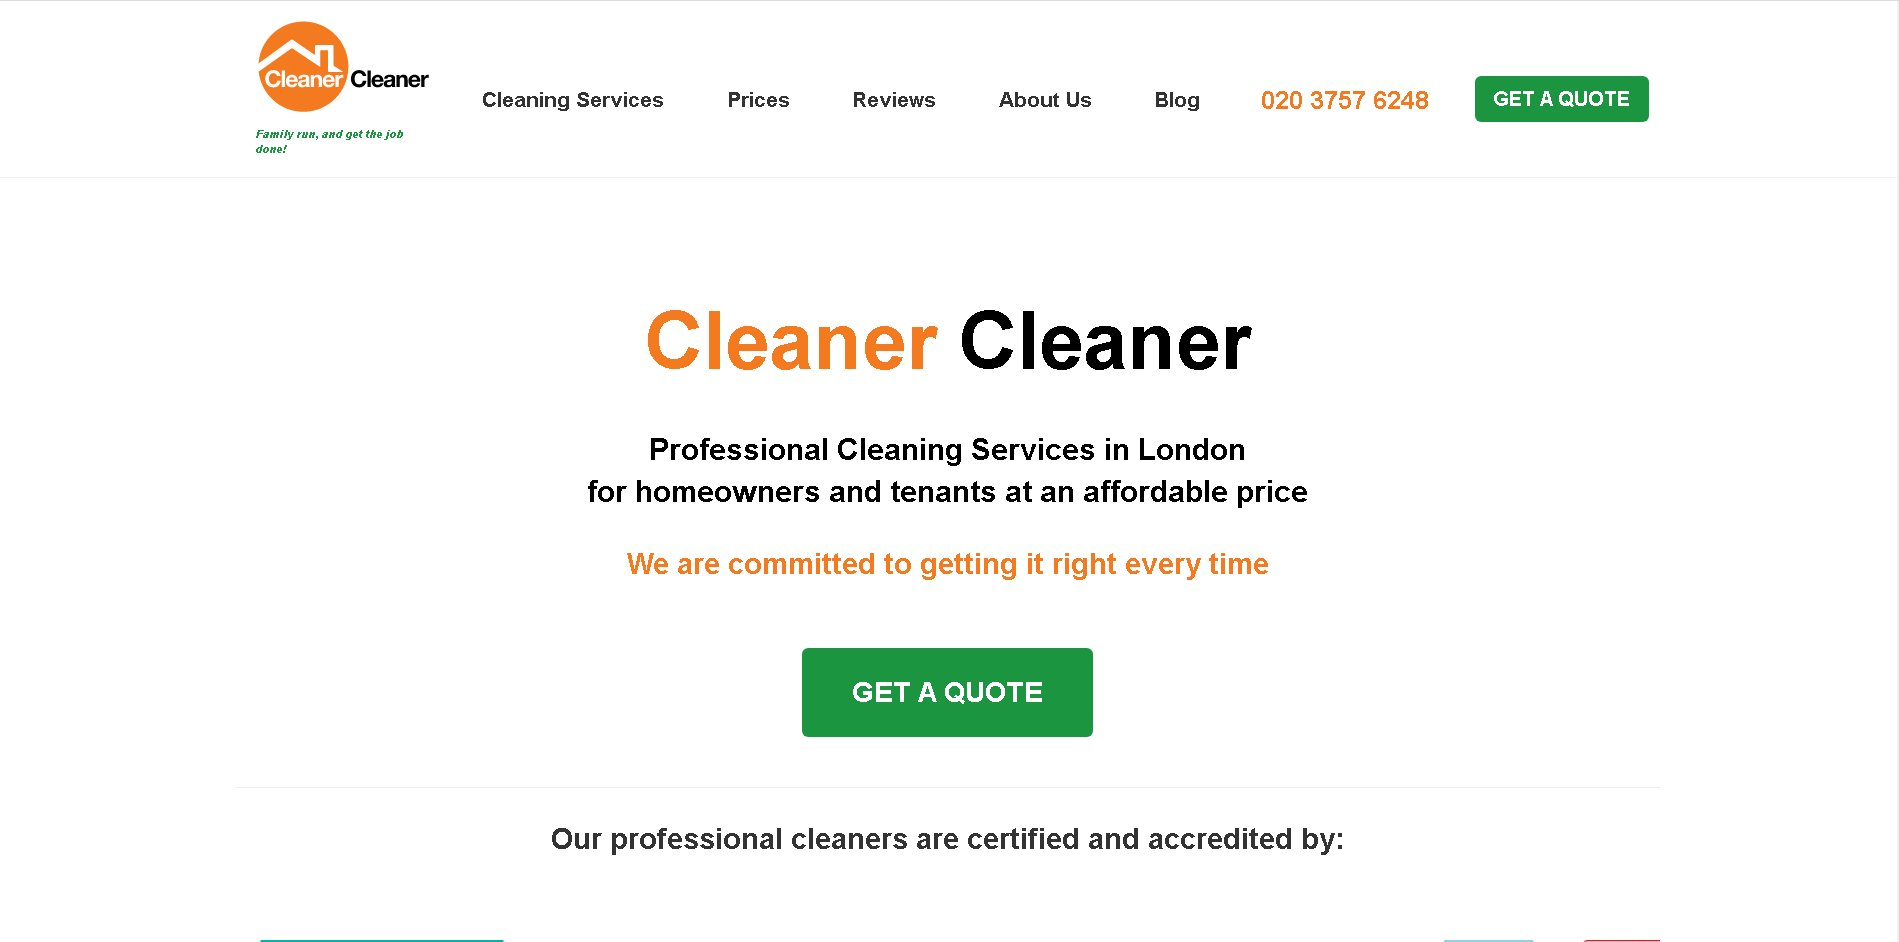 Cleaner Cleaner